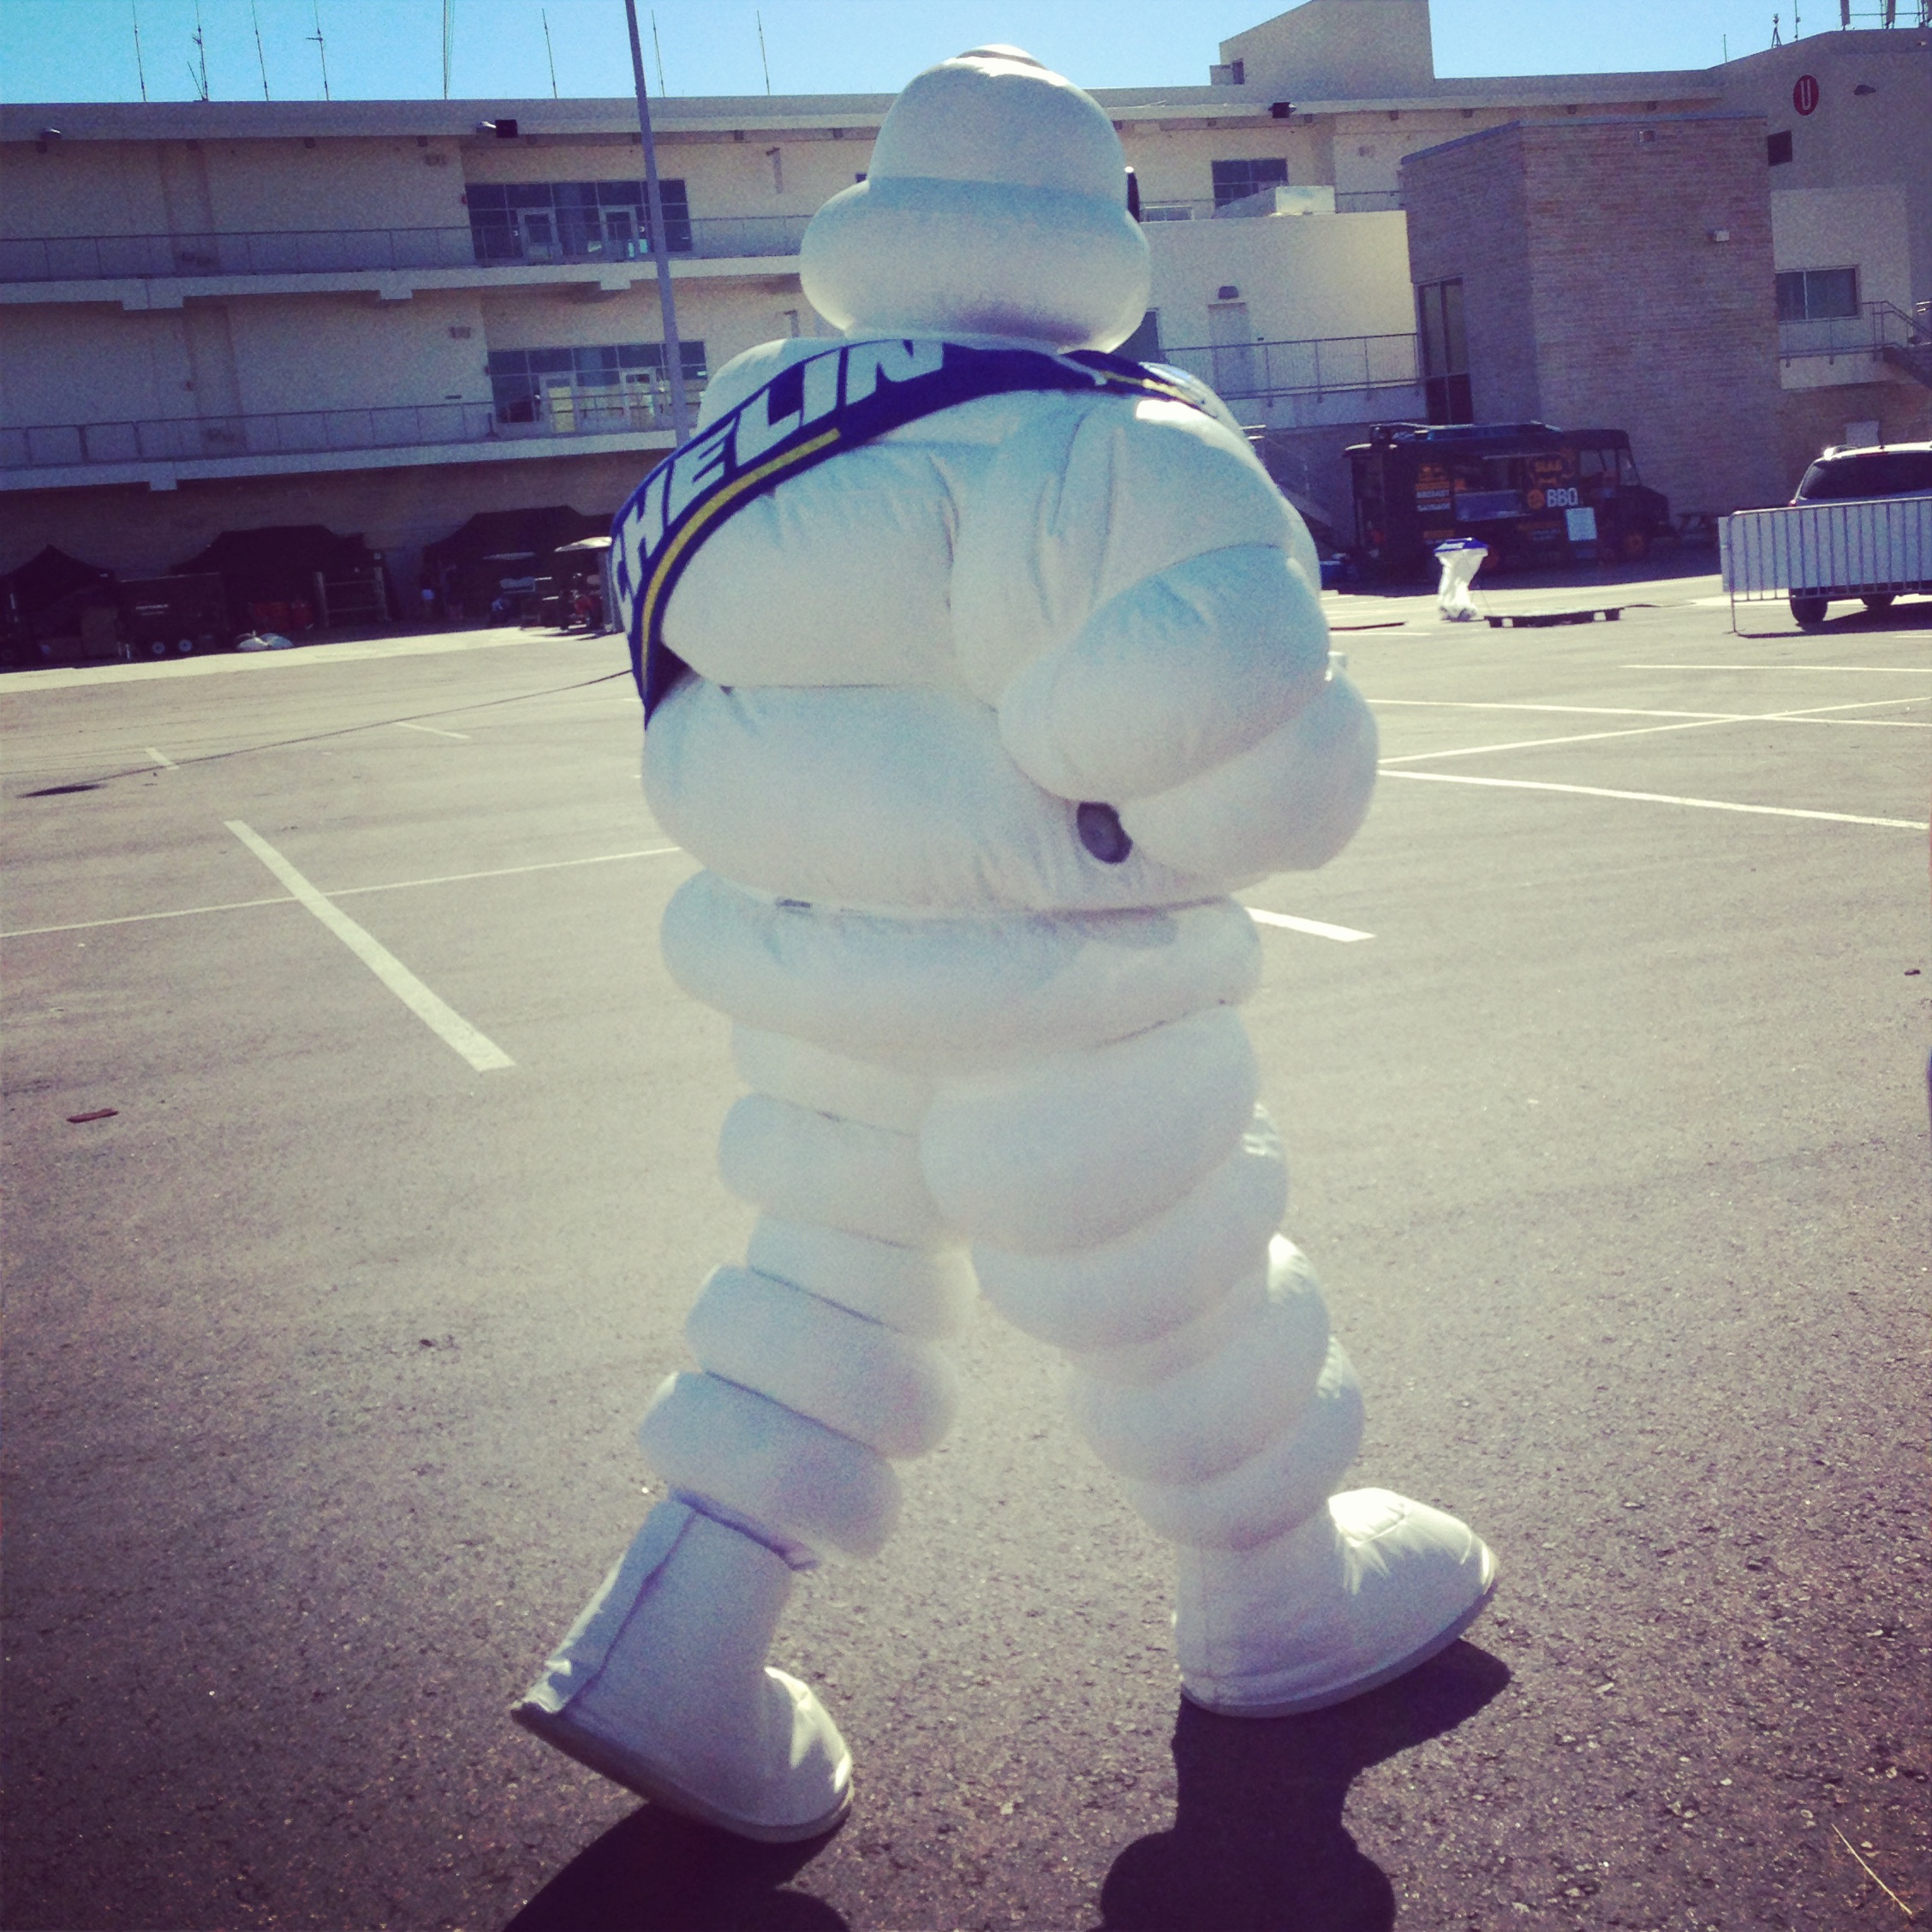 The Michelin Man heads to the COTA podium to help the winning drivers celebrate.